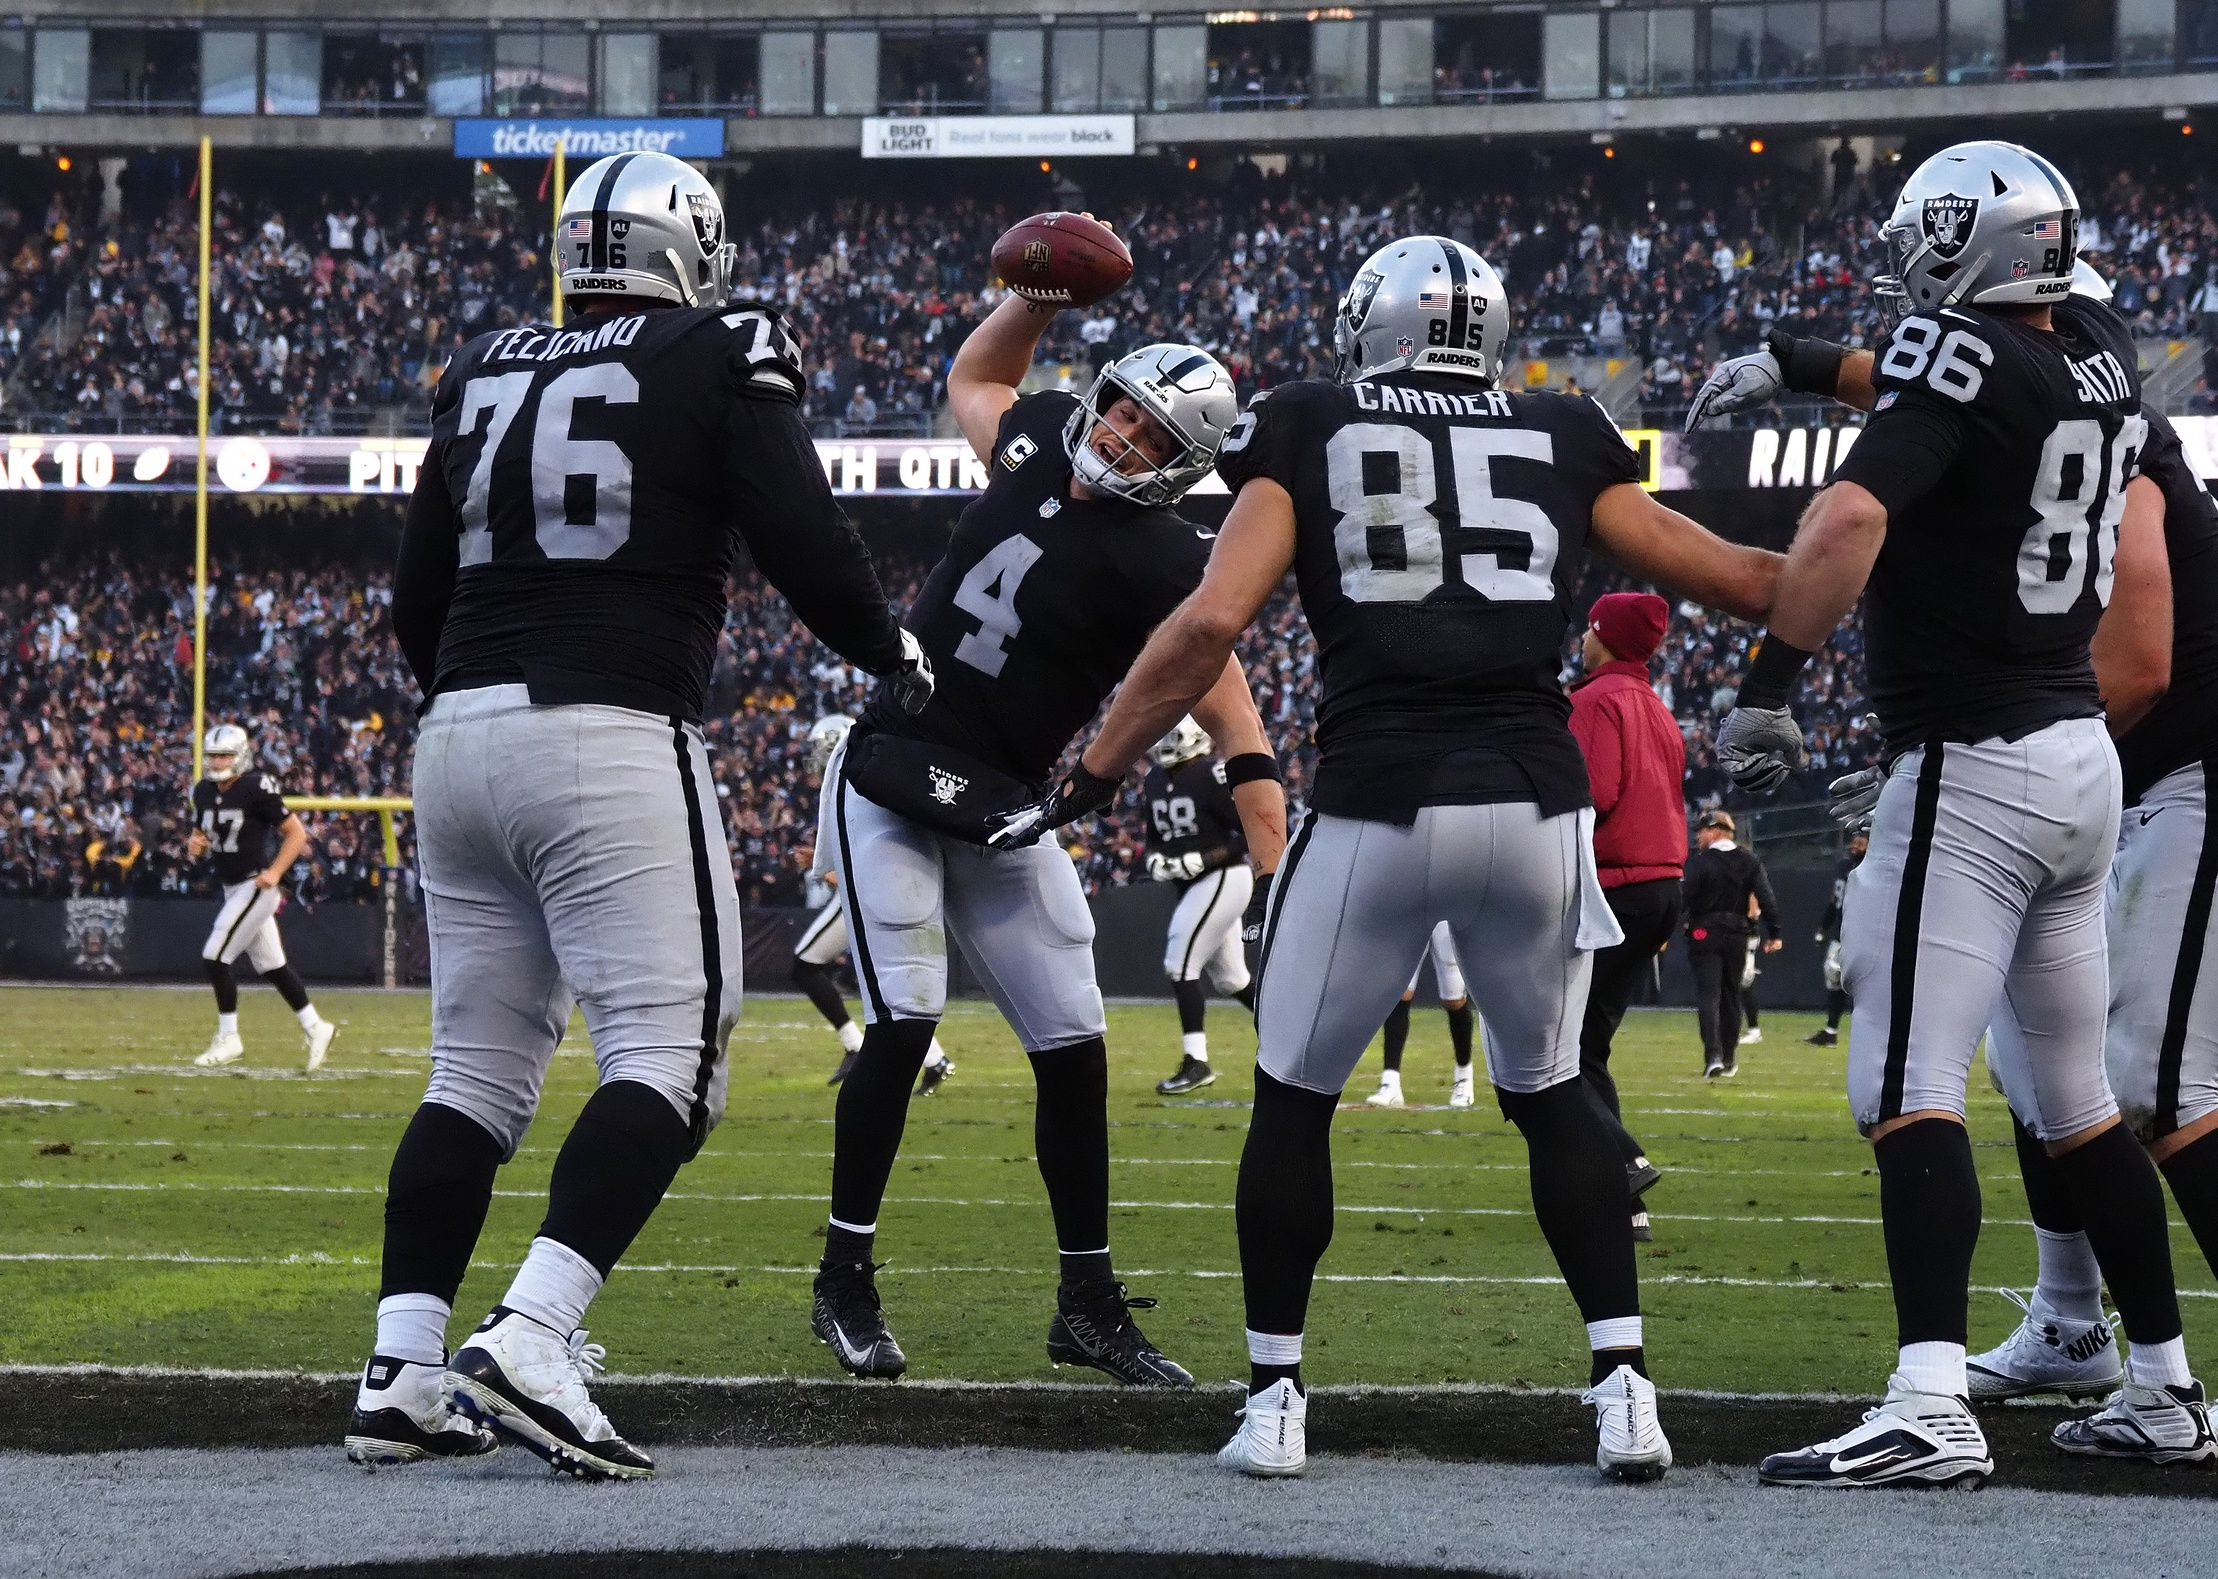 Refocused, NFL Week 14: Oakland Raiders 24, Pittsburgh Steelers 21